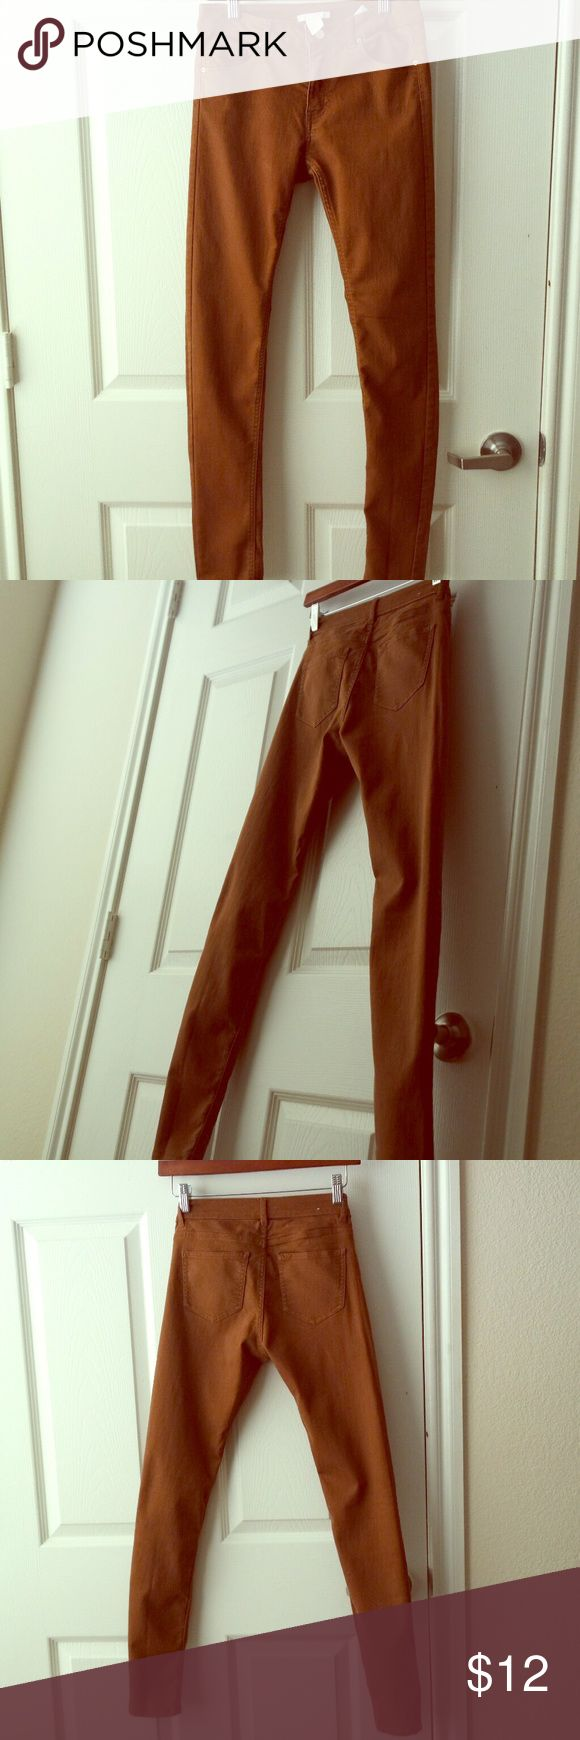 Brown Skinny Jeans H&M brown skinny jeans 💗 the perfect shade of brown to match with almost anything. Stretchy and lightweight. I wore them a few times. They fit more like a size 2 in my opinion unless you have a small butt 🍑 H&M Jeans Skinny